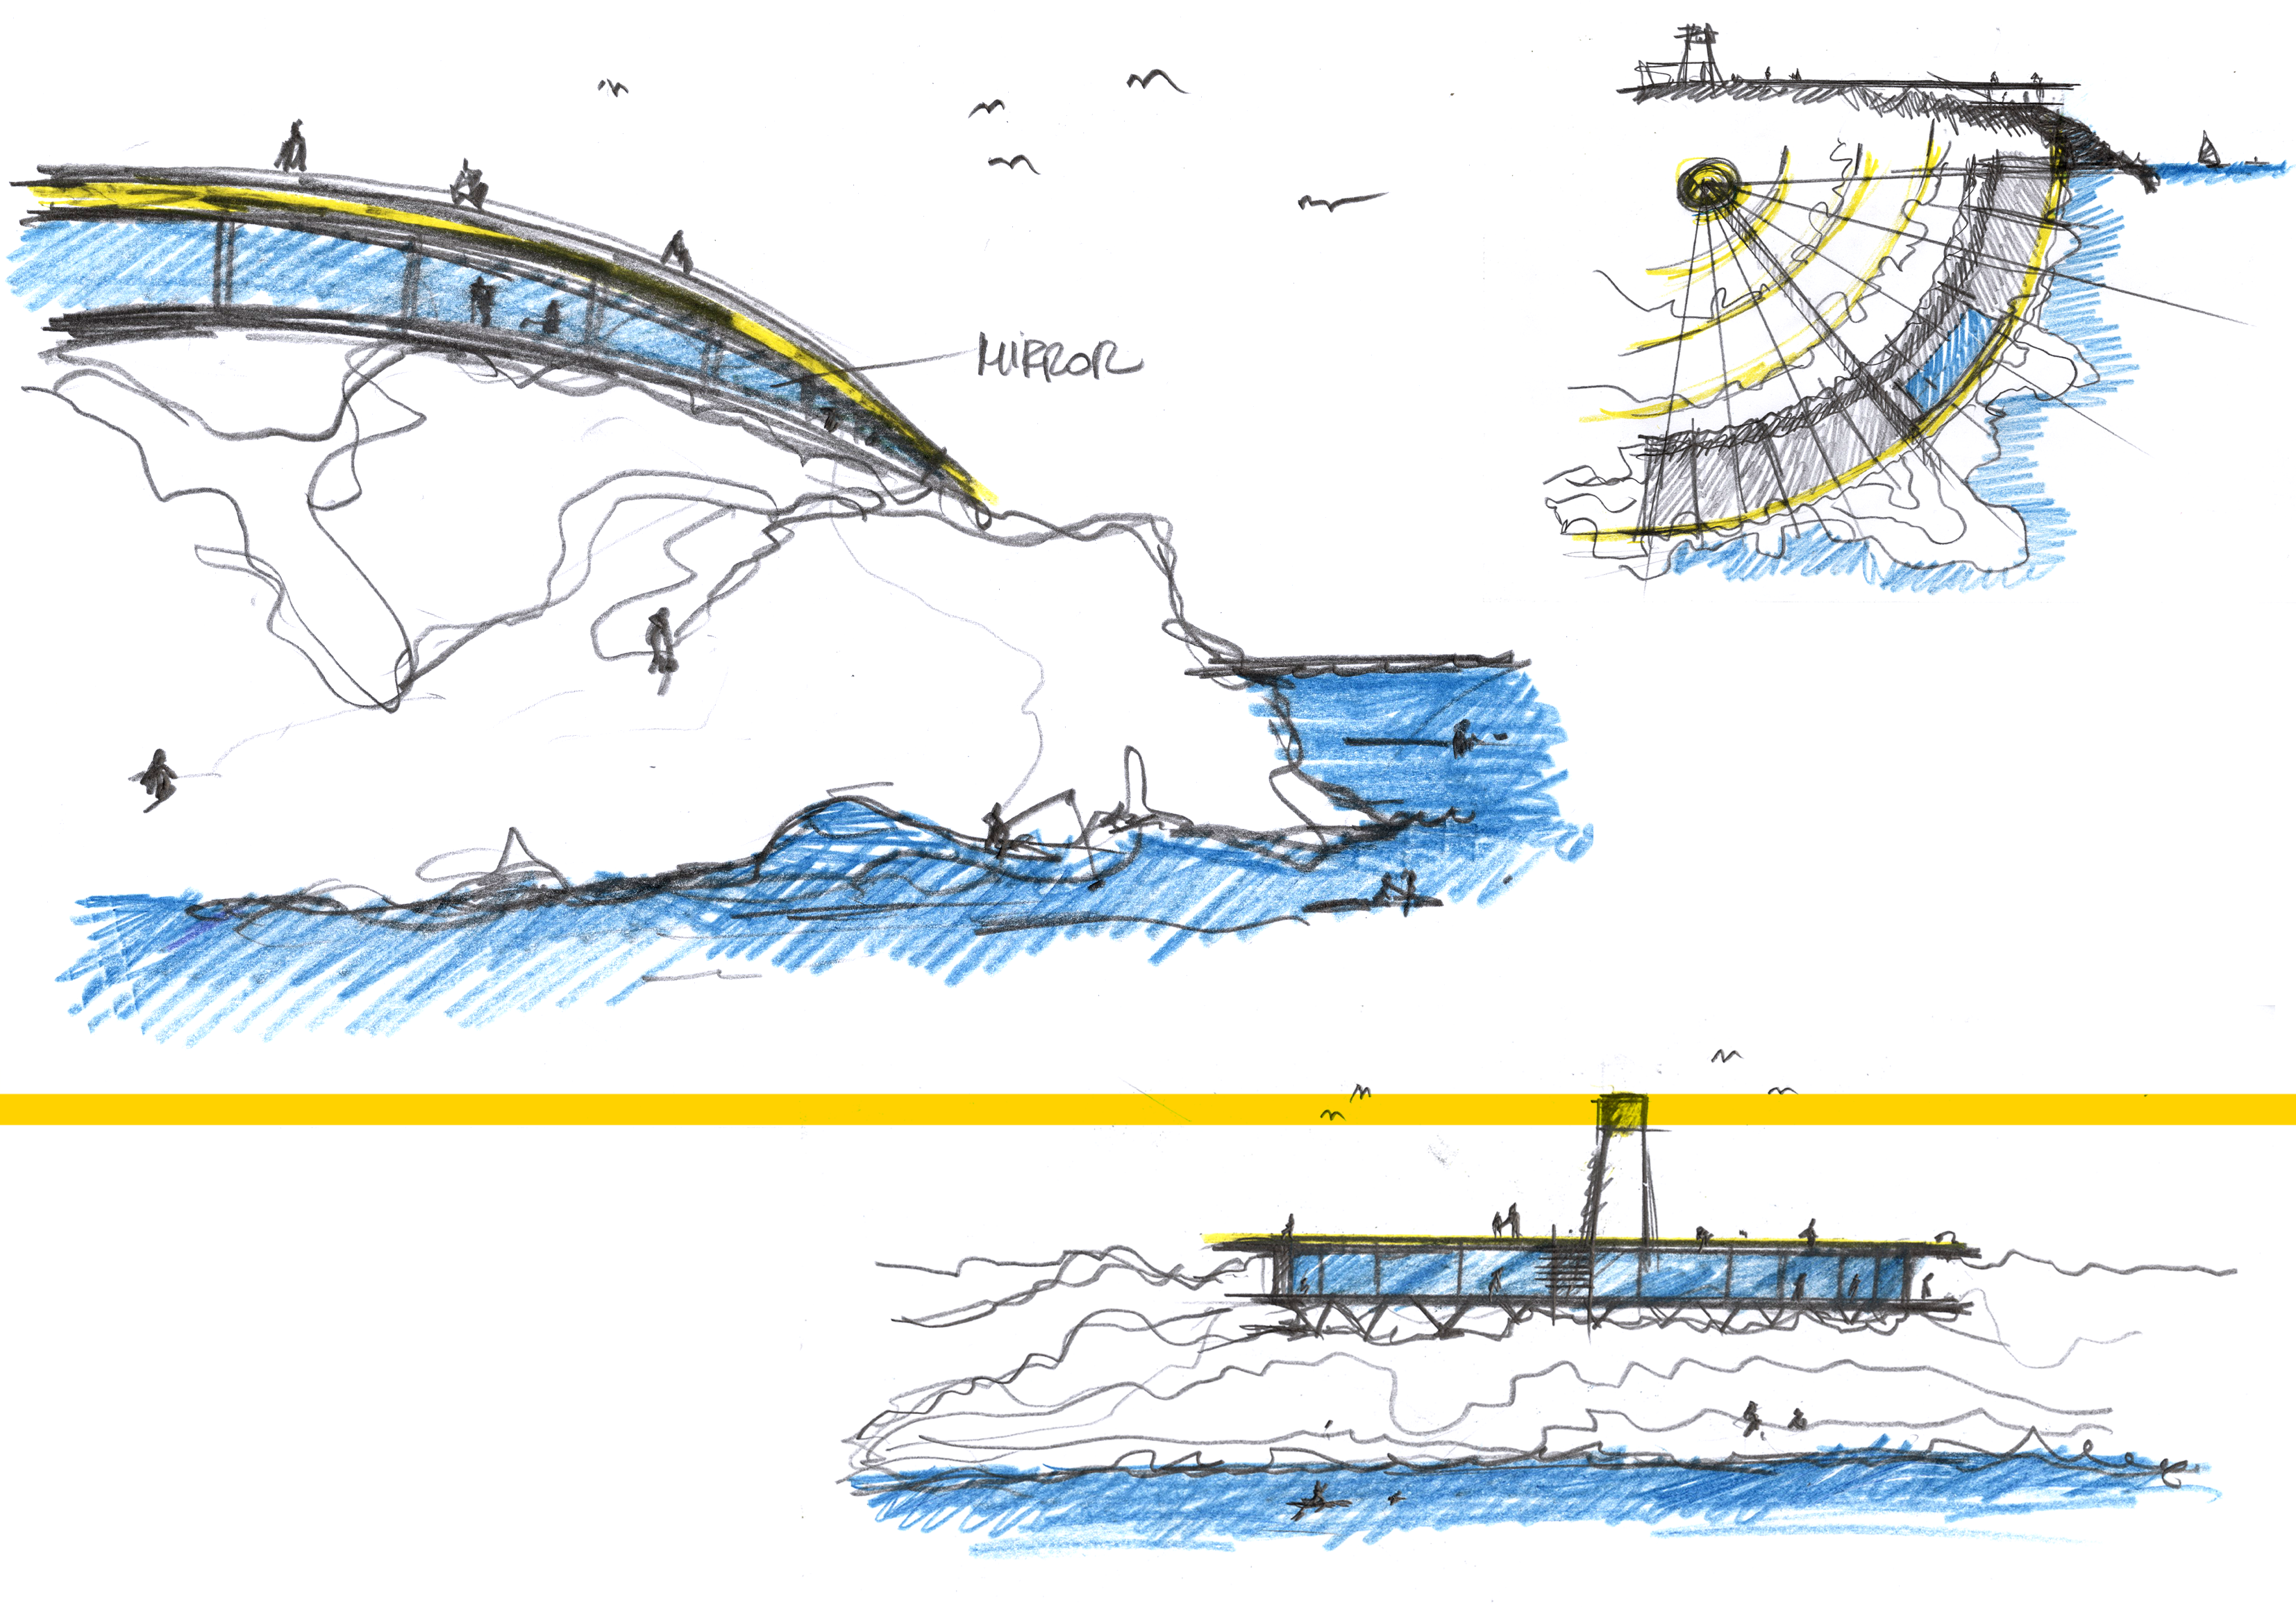 Bevilacqua Architects - The Circle Light - Yac Lighthouse Sea Hotel Competition